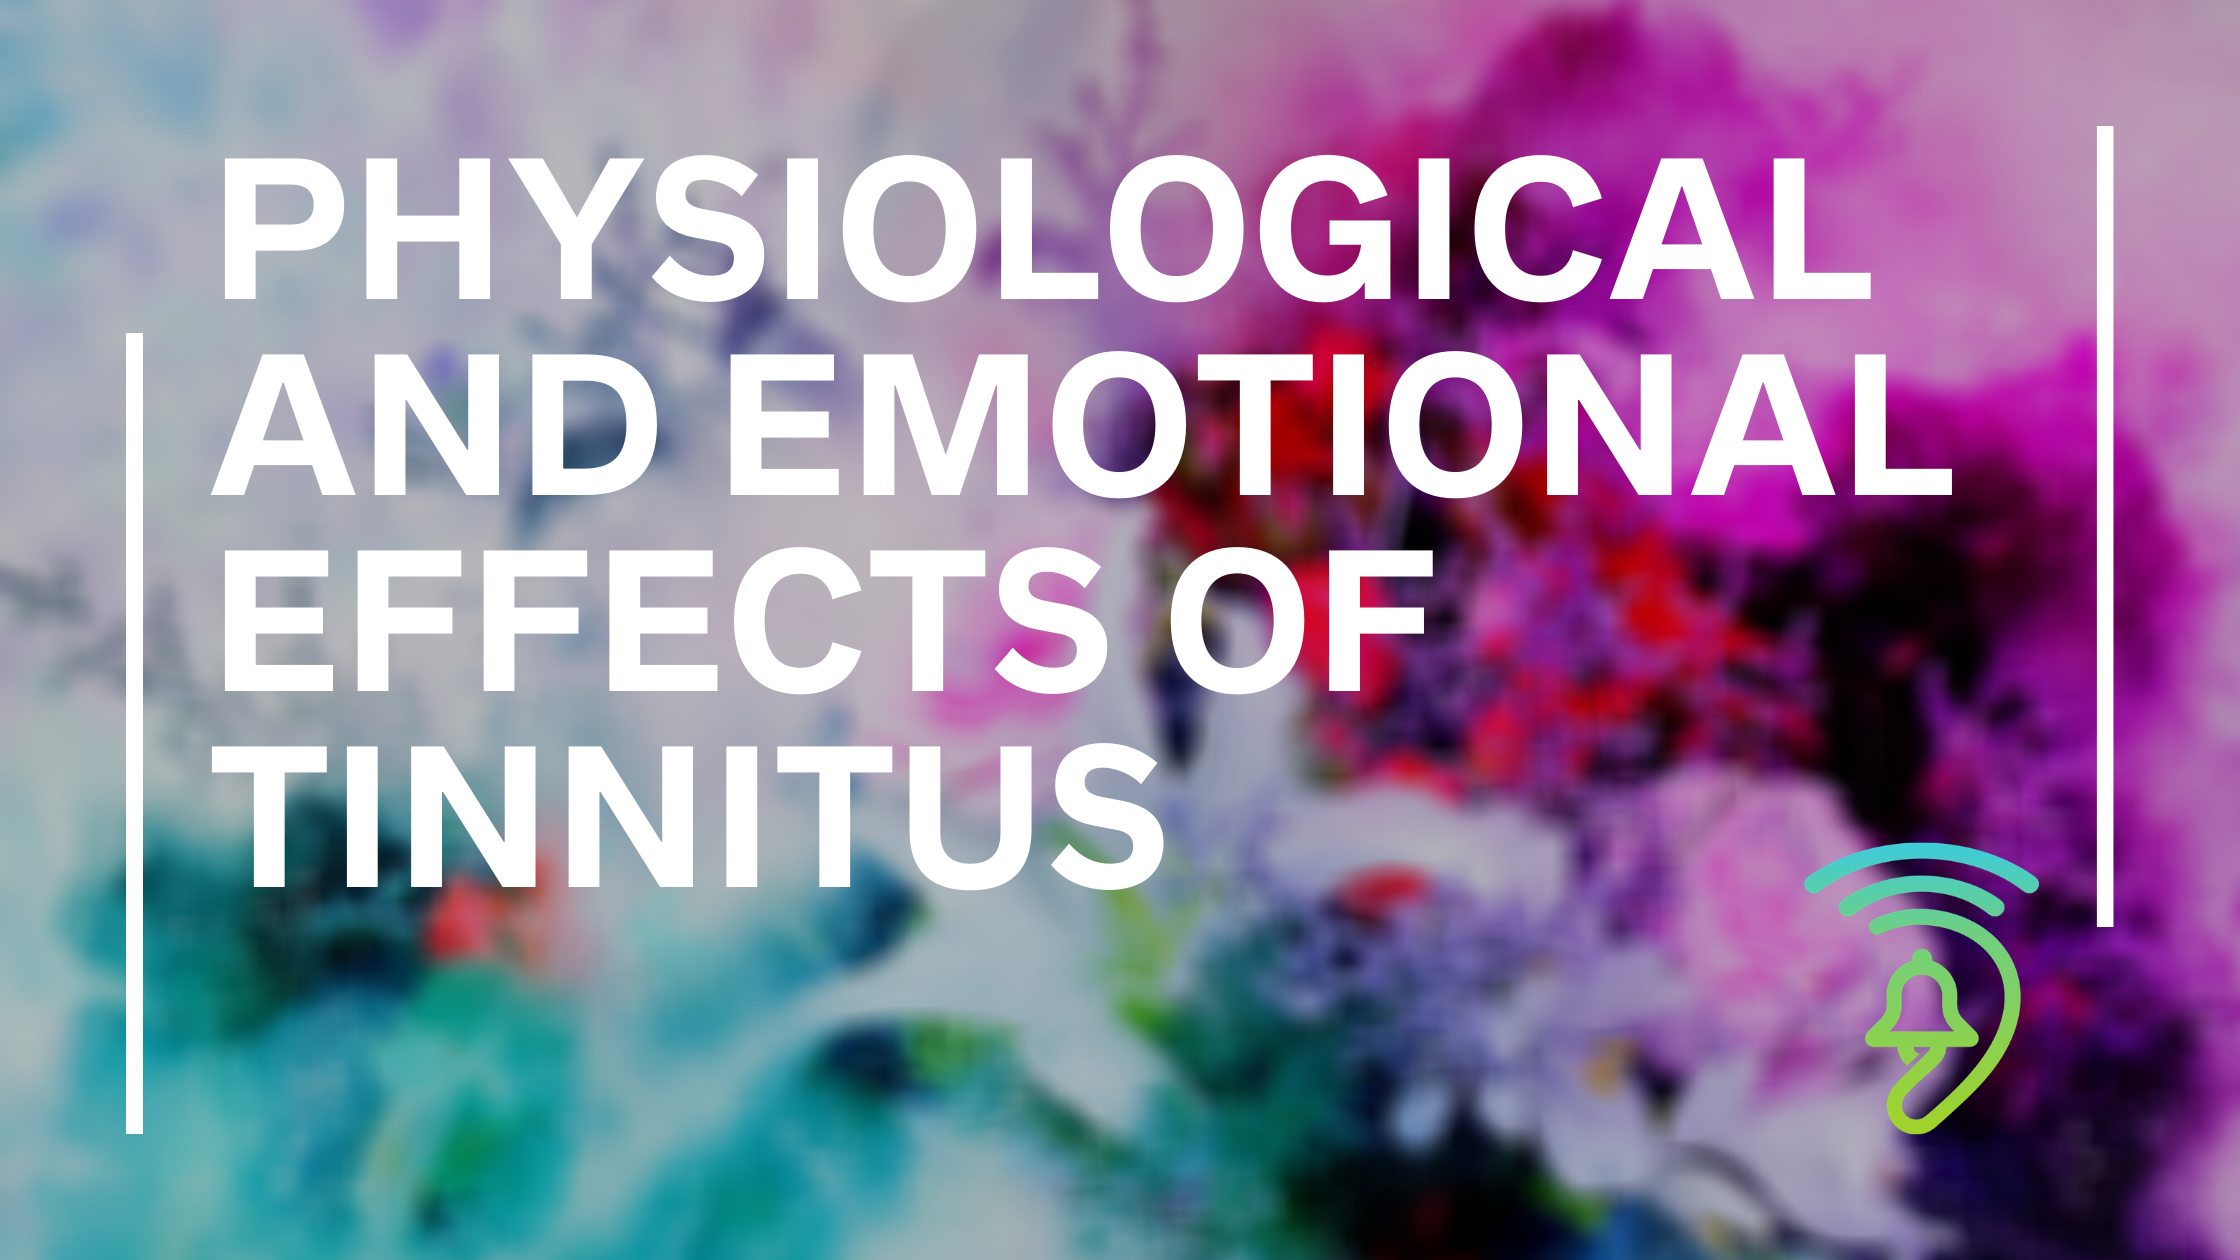 Effects of Tinnitus